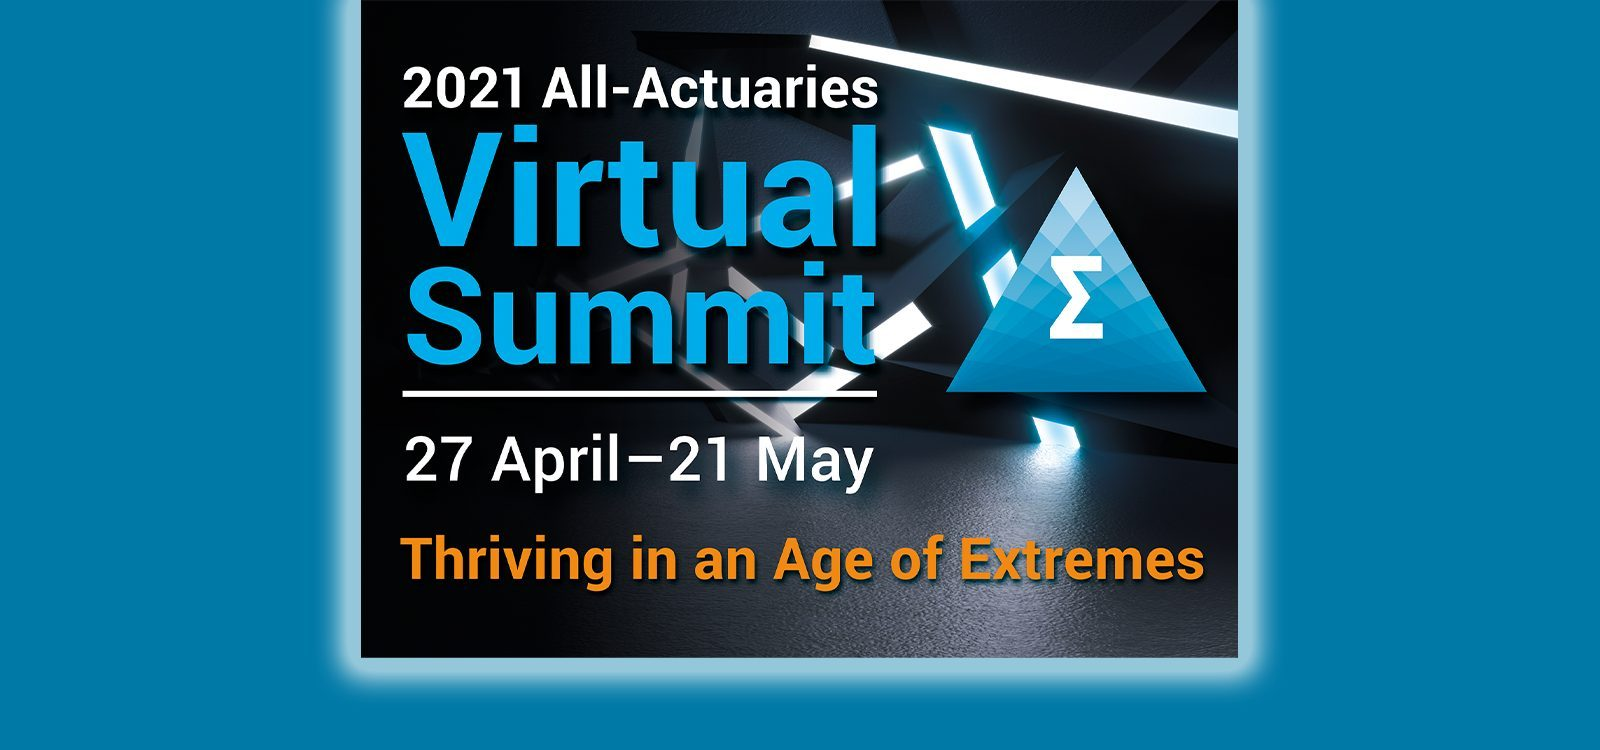 2021 Virtual Summit to cater for all